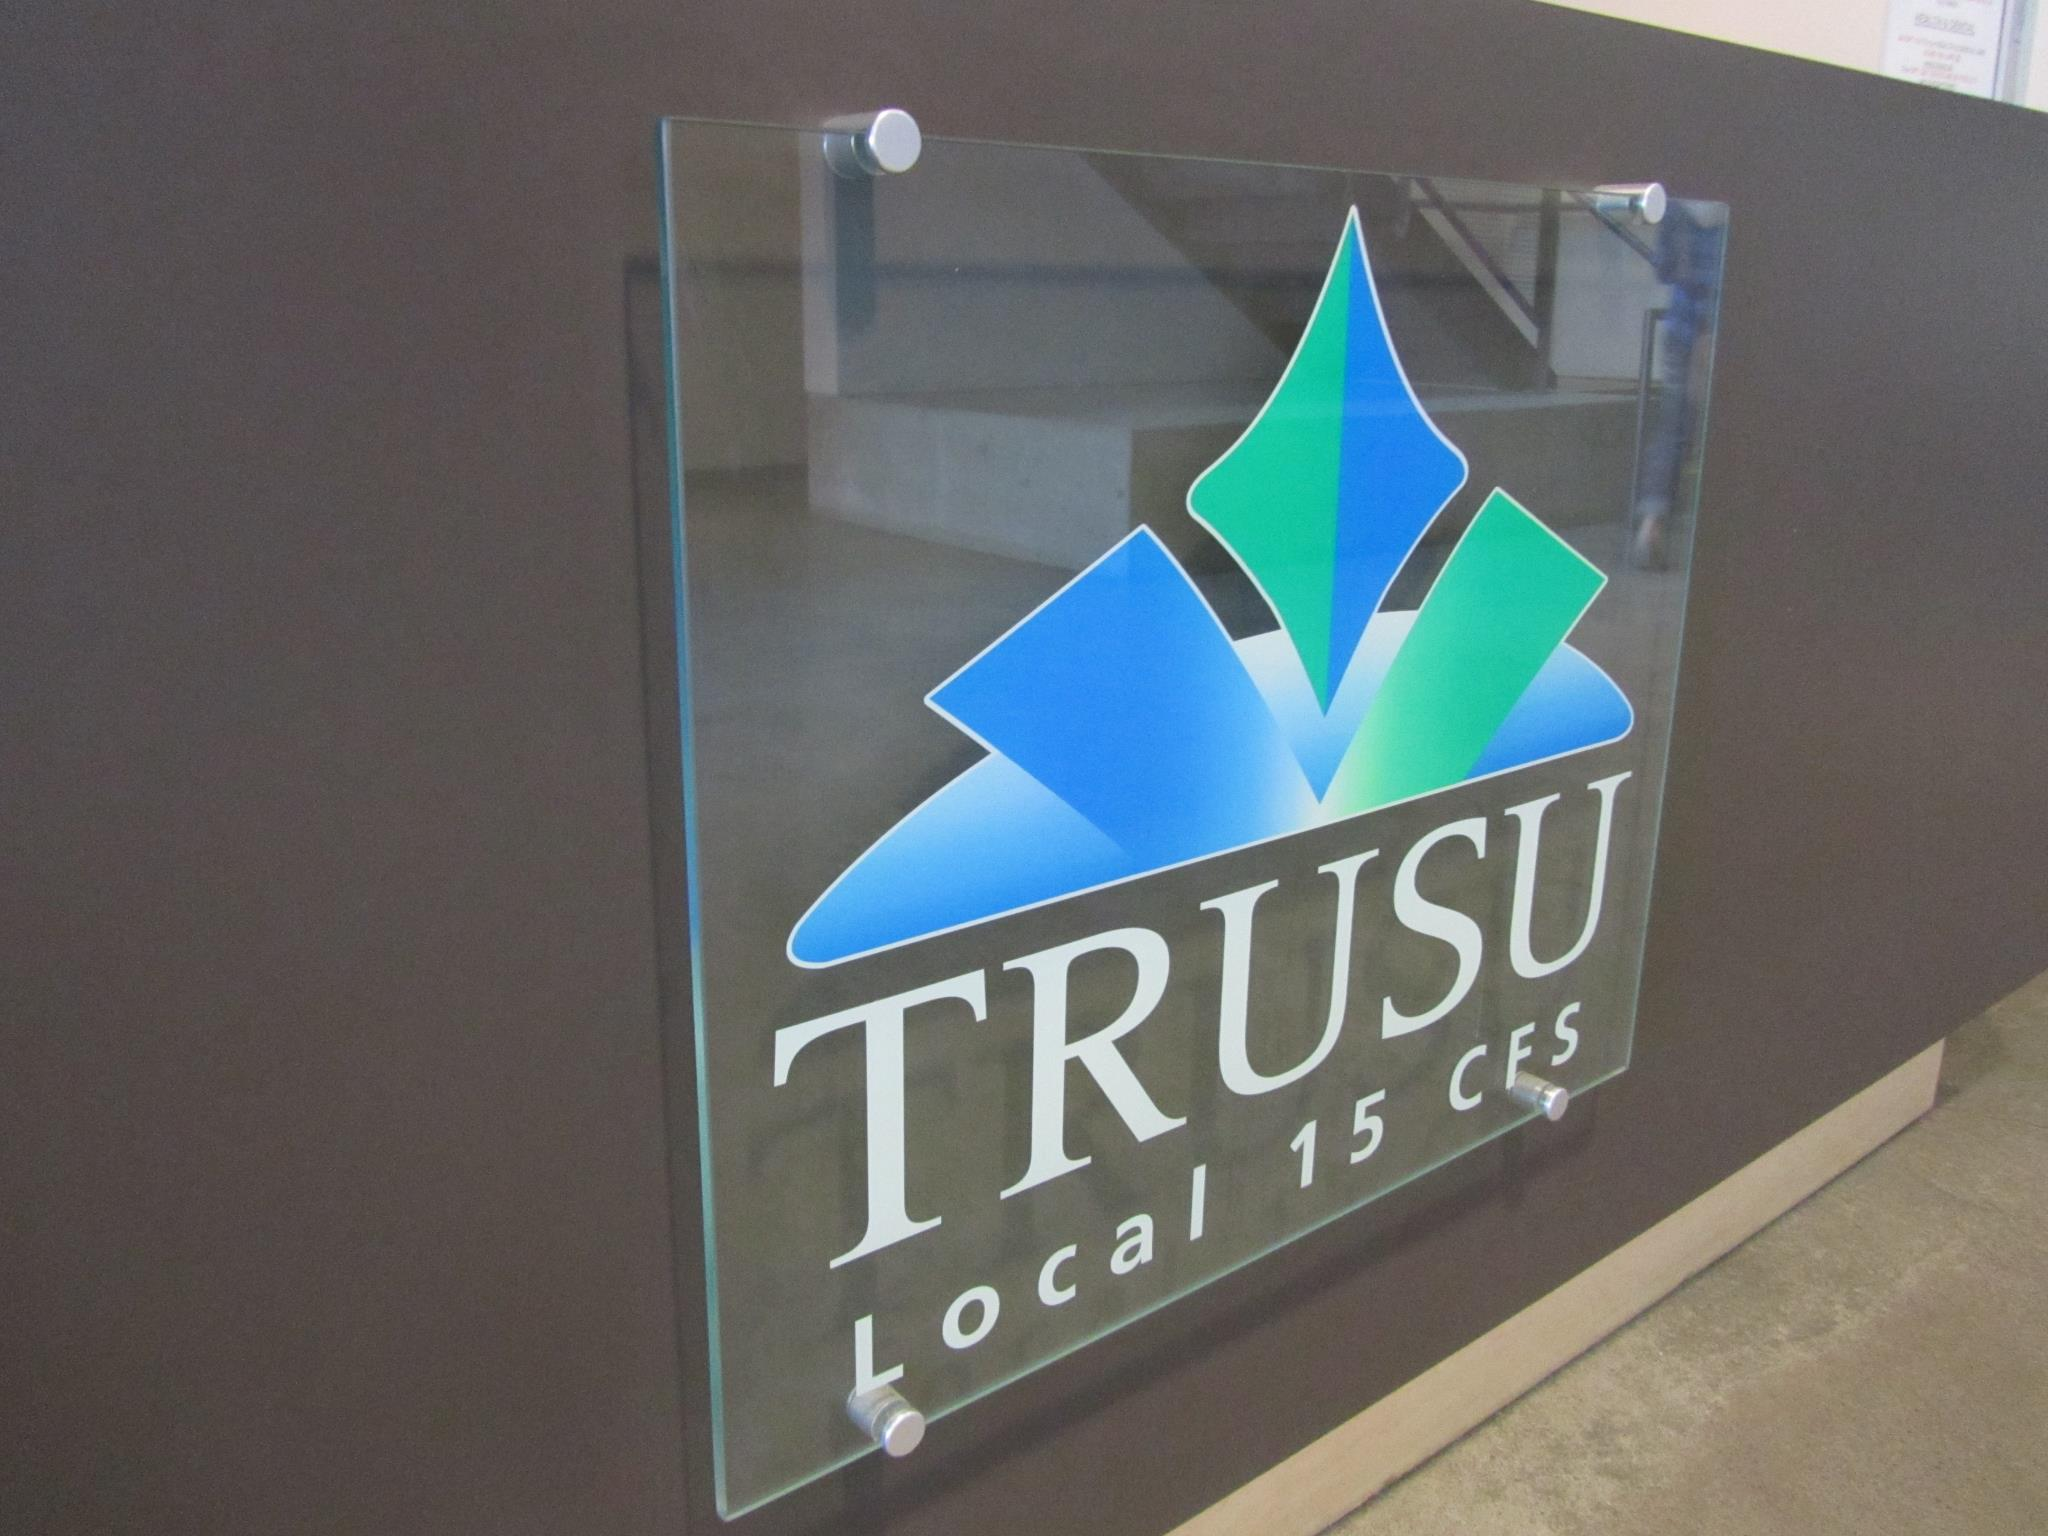 TRU planning to give existing food services a second look